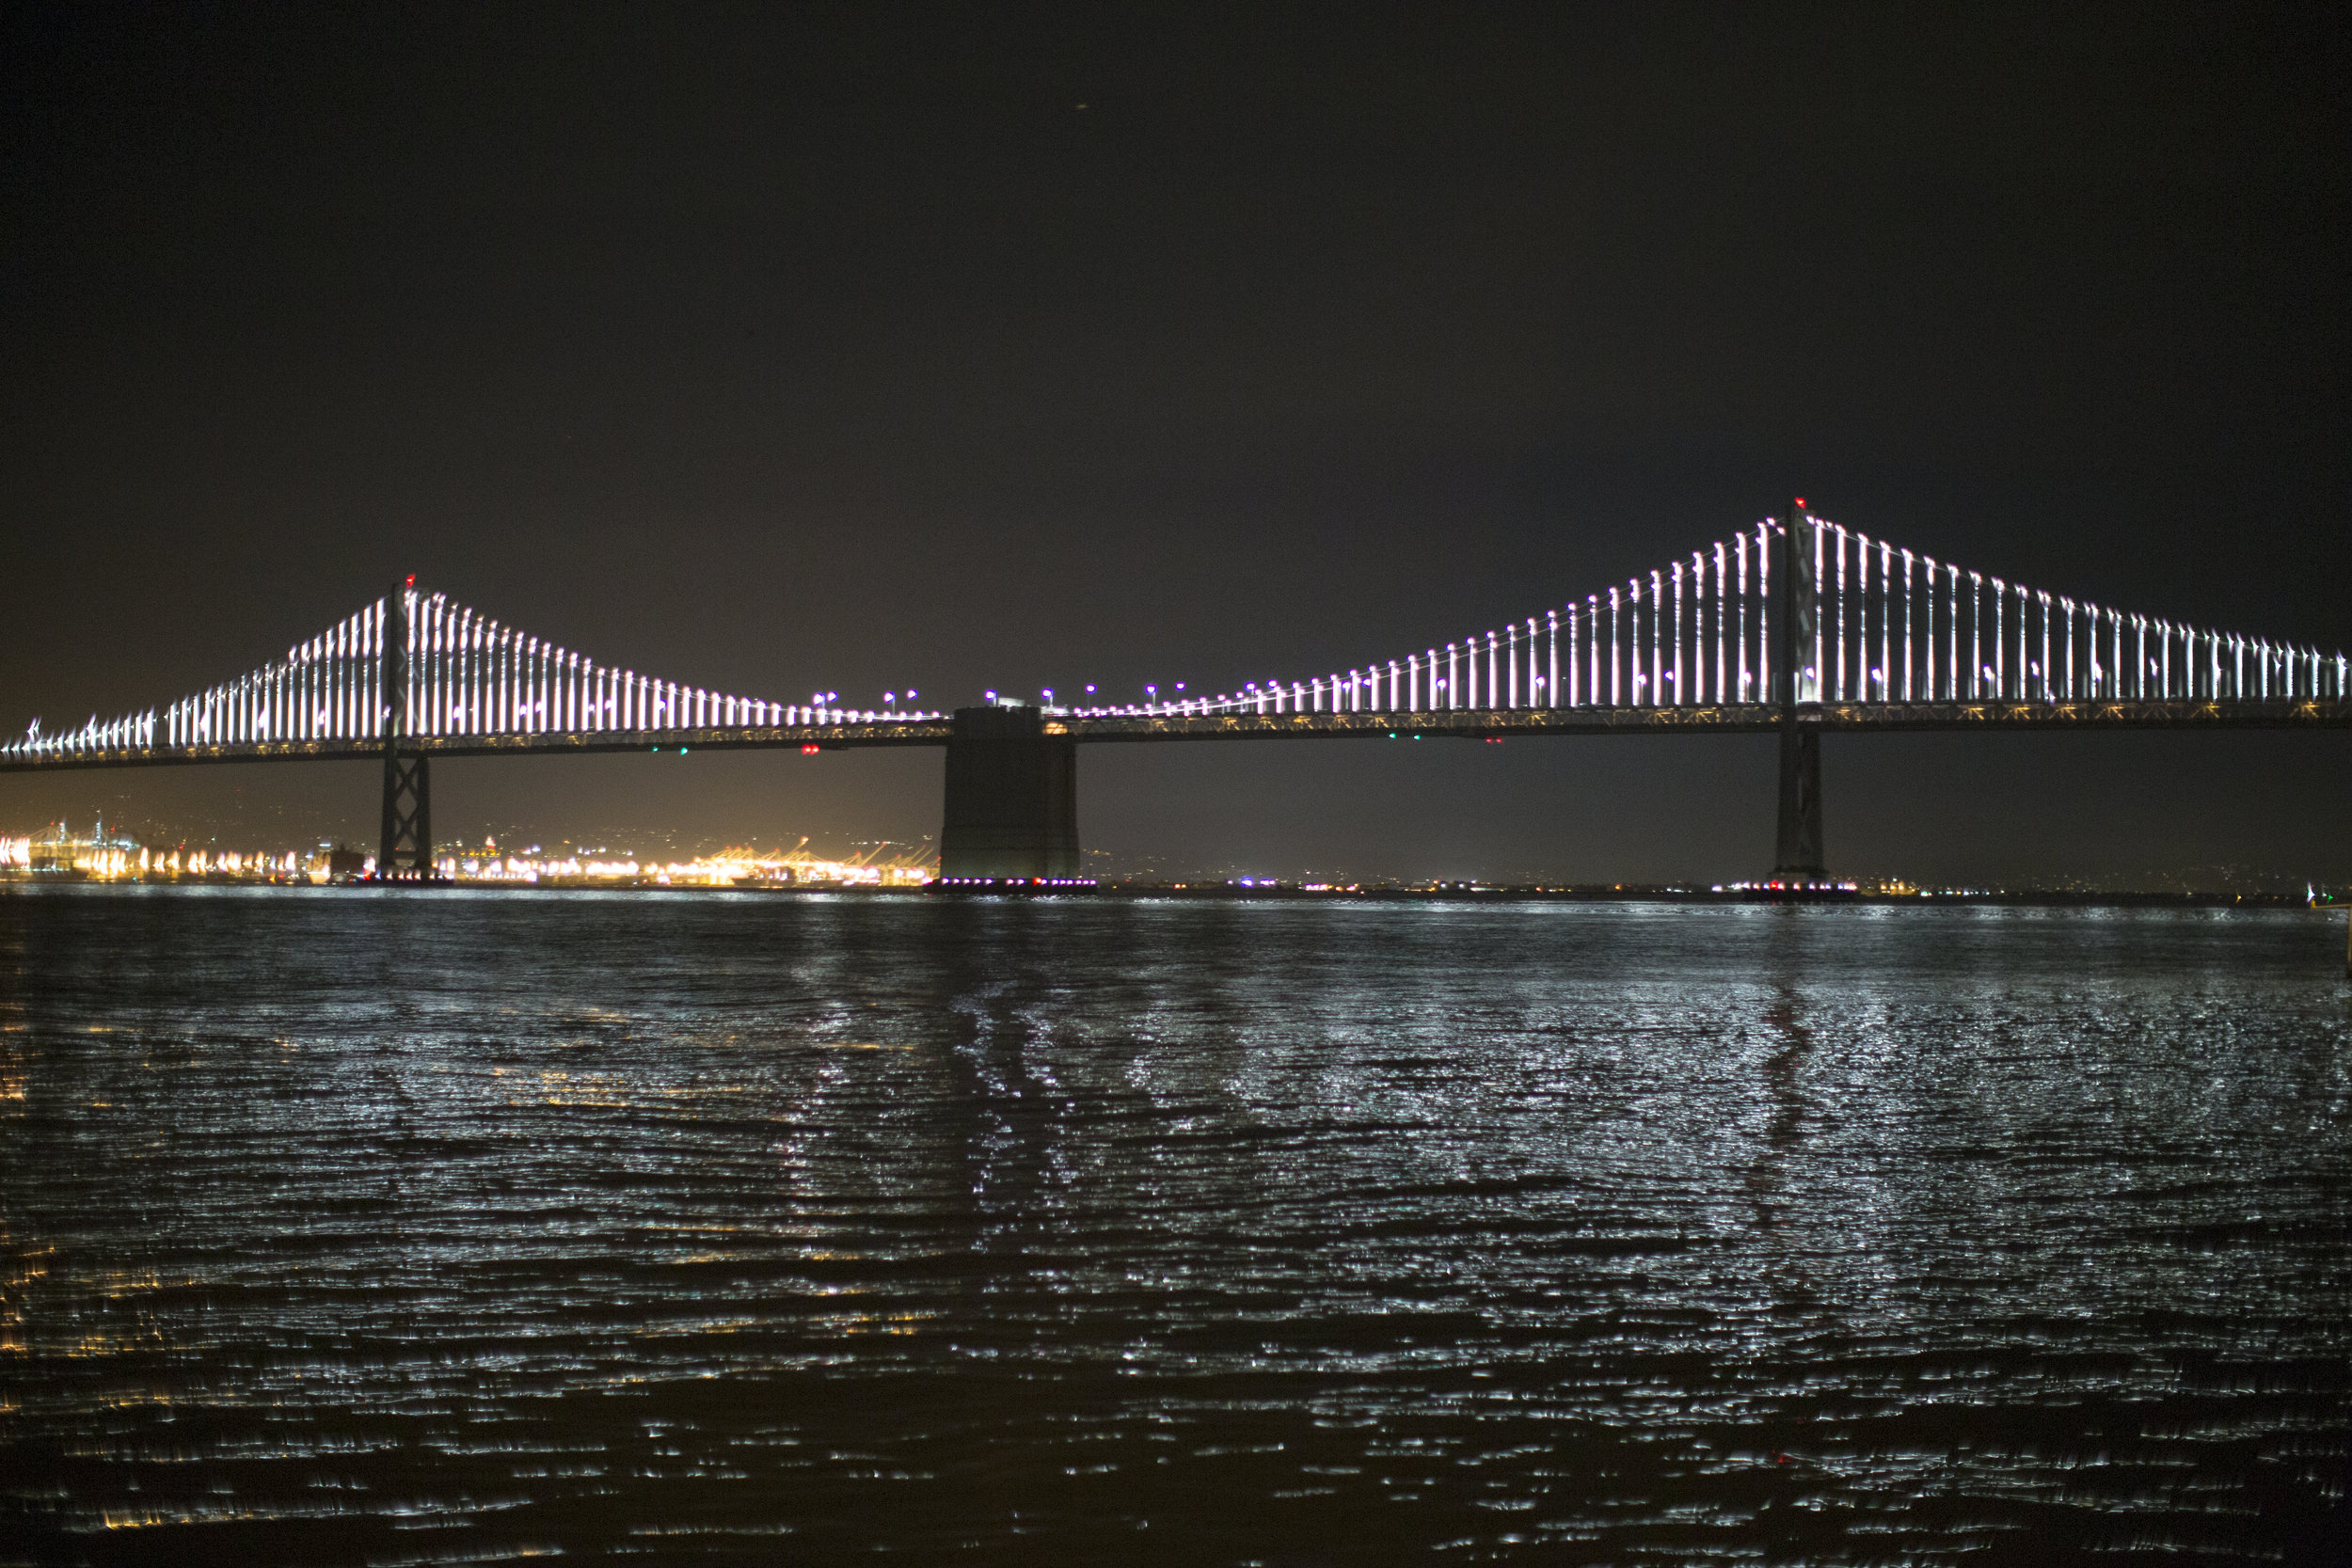 BAY BRIDGE_01.jpg